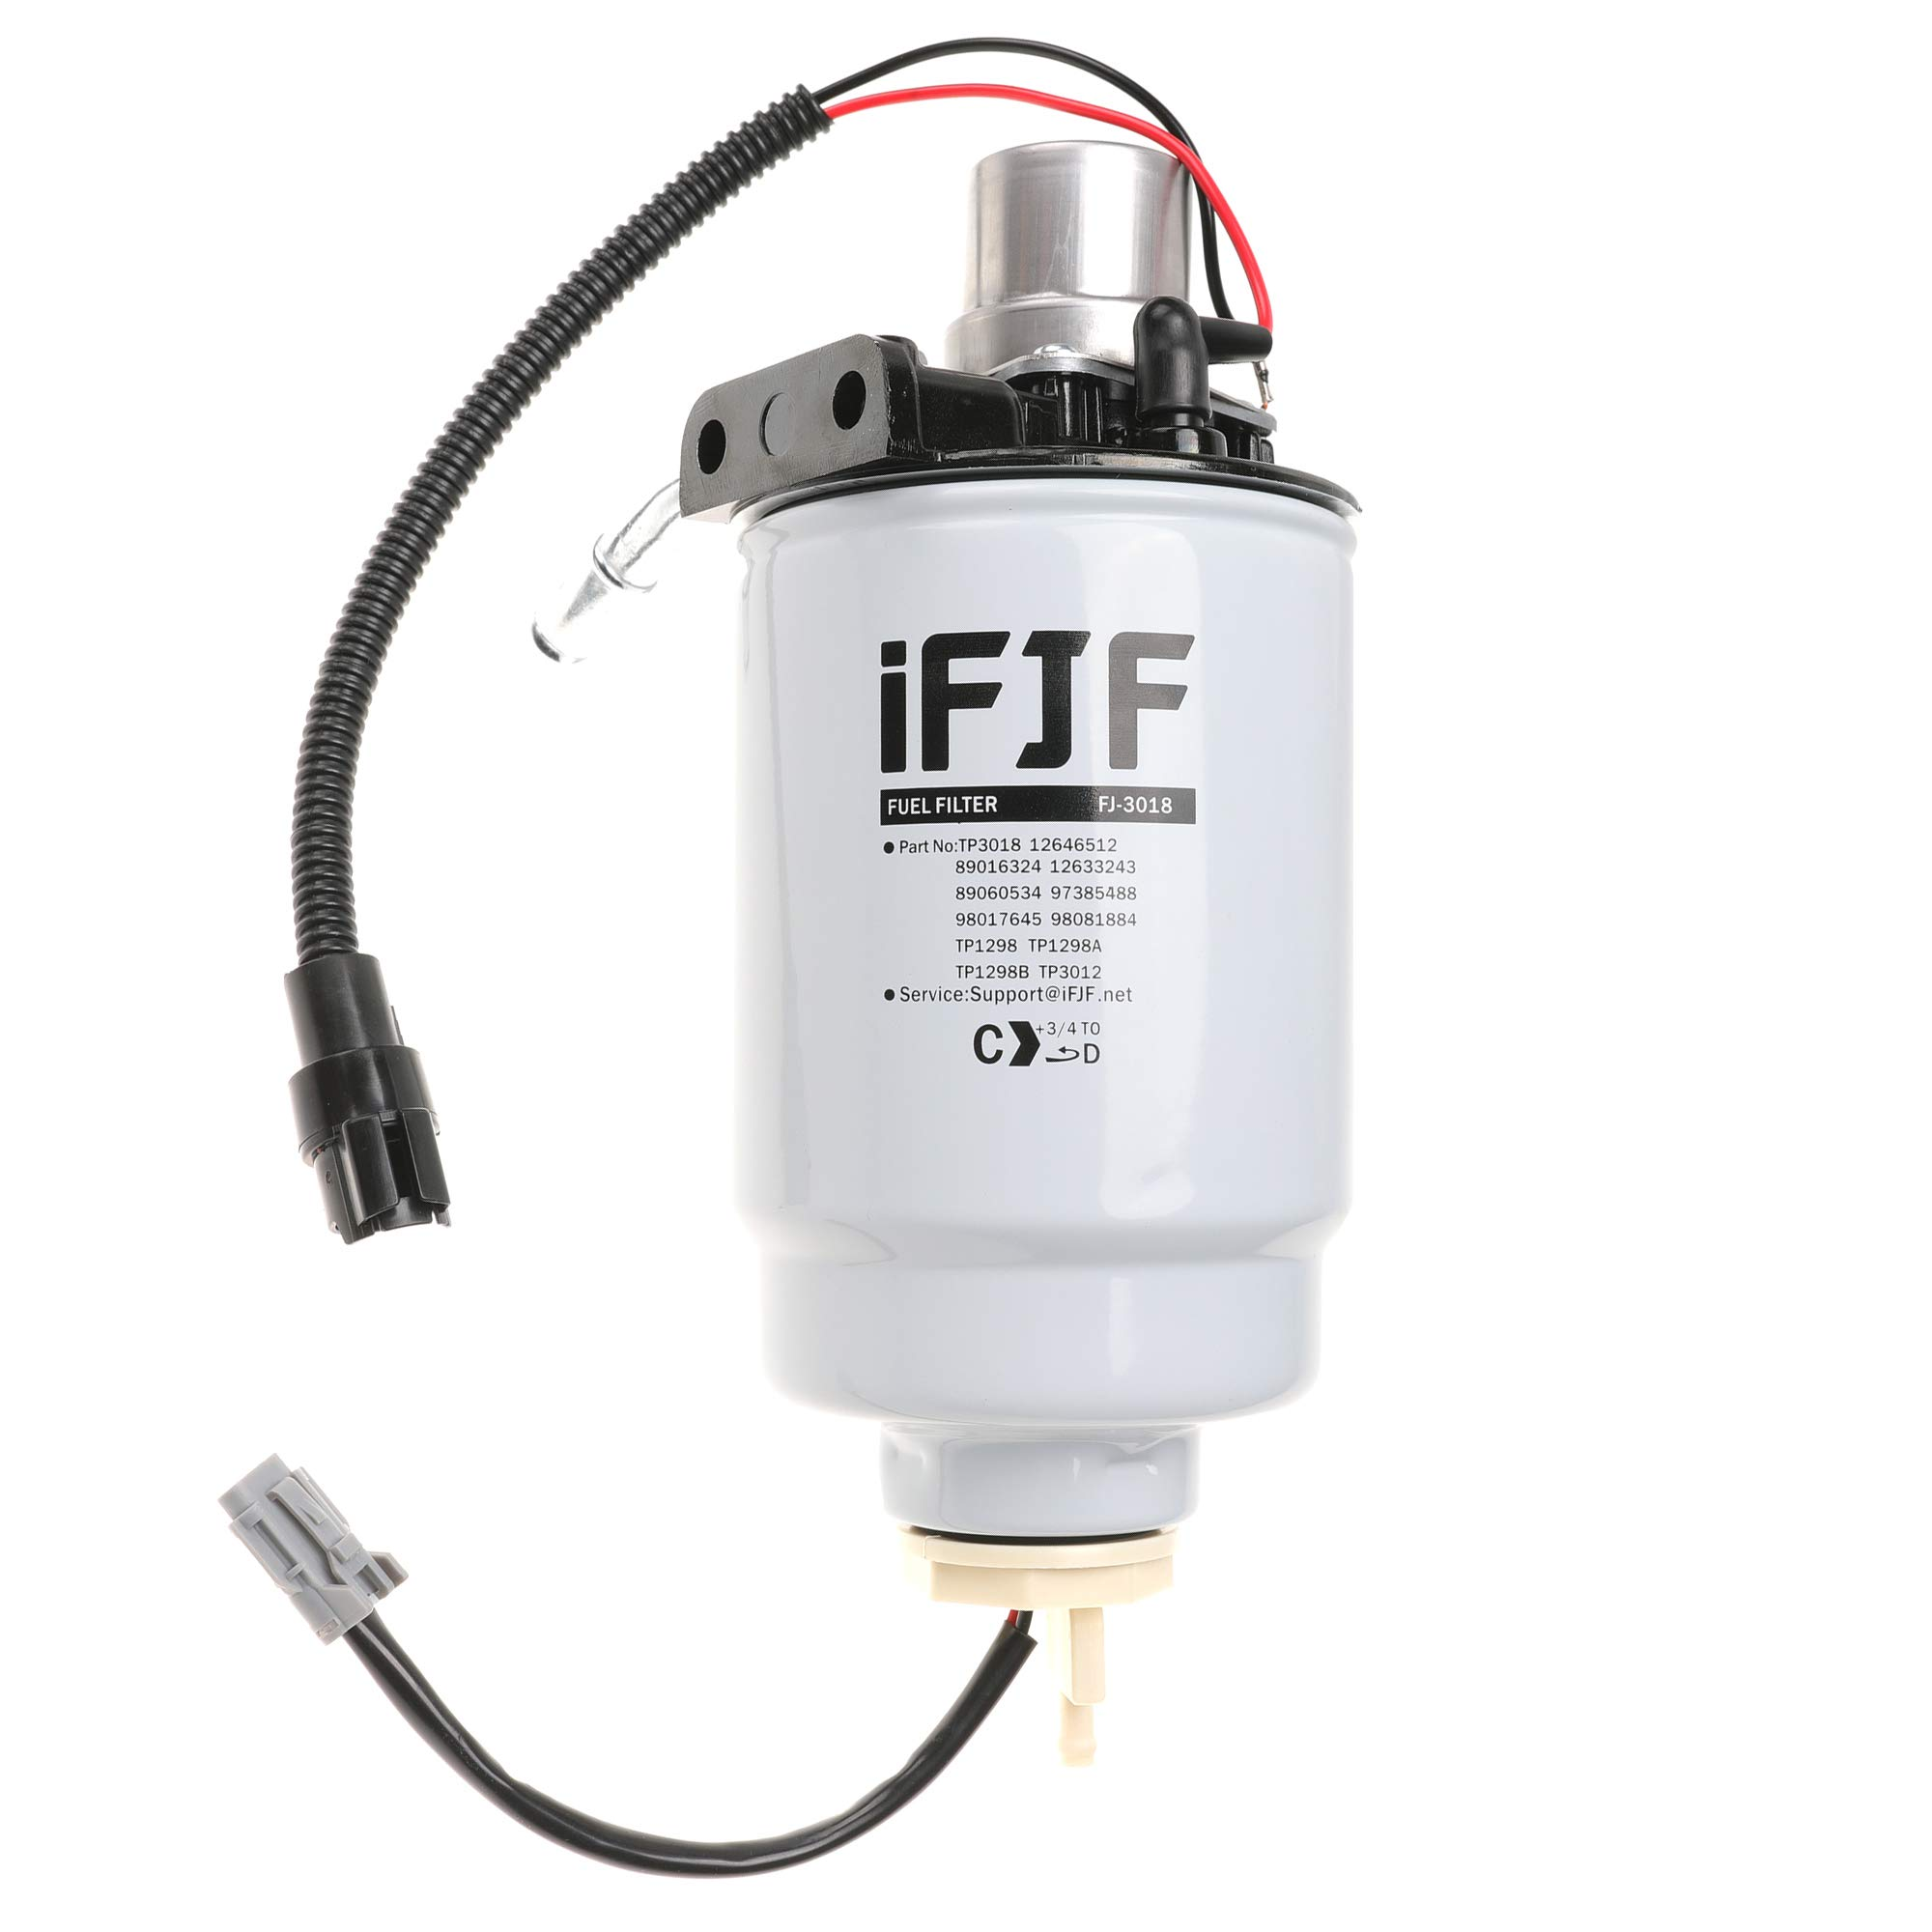 [DIAGRAM_4FR]  iFJF 12642623 Fuel Filter Head for Duramax Fuel Filter Housing 6.6  Replacement for GM Chevrolet GMC Duramax V8 6.6L Lb7 Fuel Filter Housing  2004-2013 (Assembly) - Buy Online in Bahrain. | [missing {{ | Gm 12642623 Fuel Filter |  | Desertcart